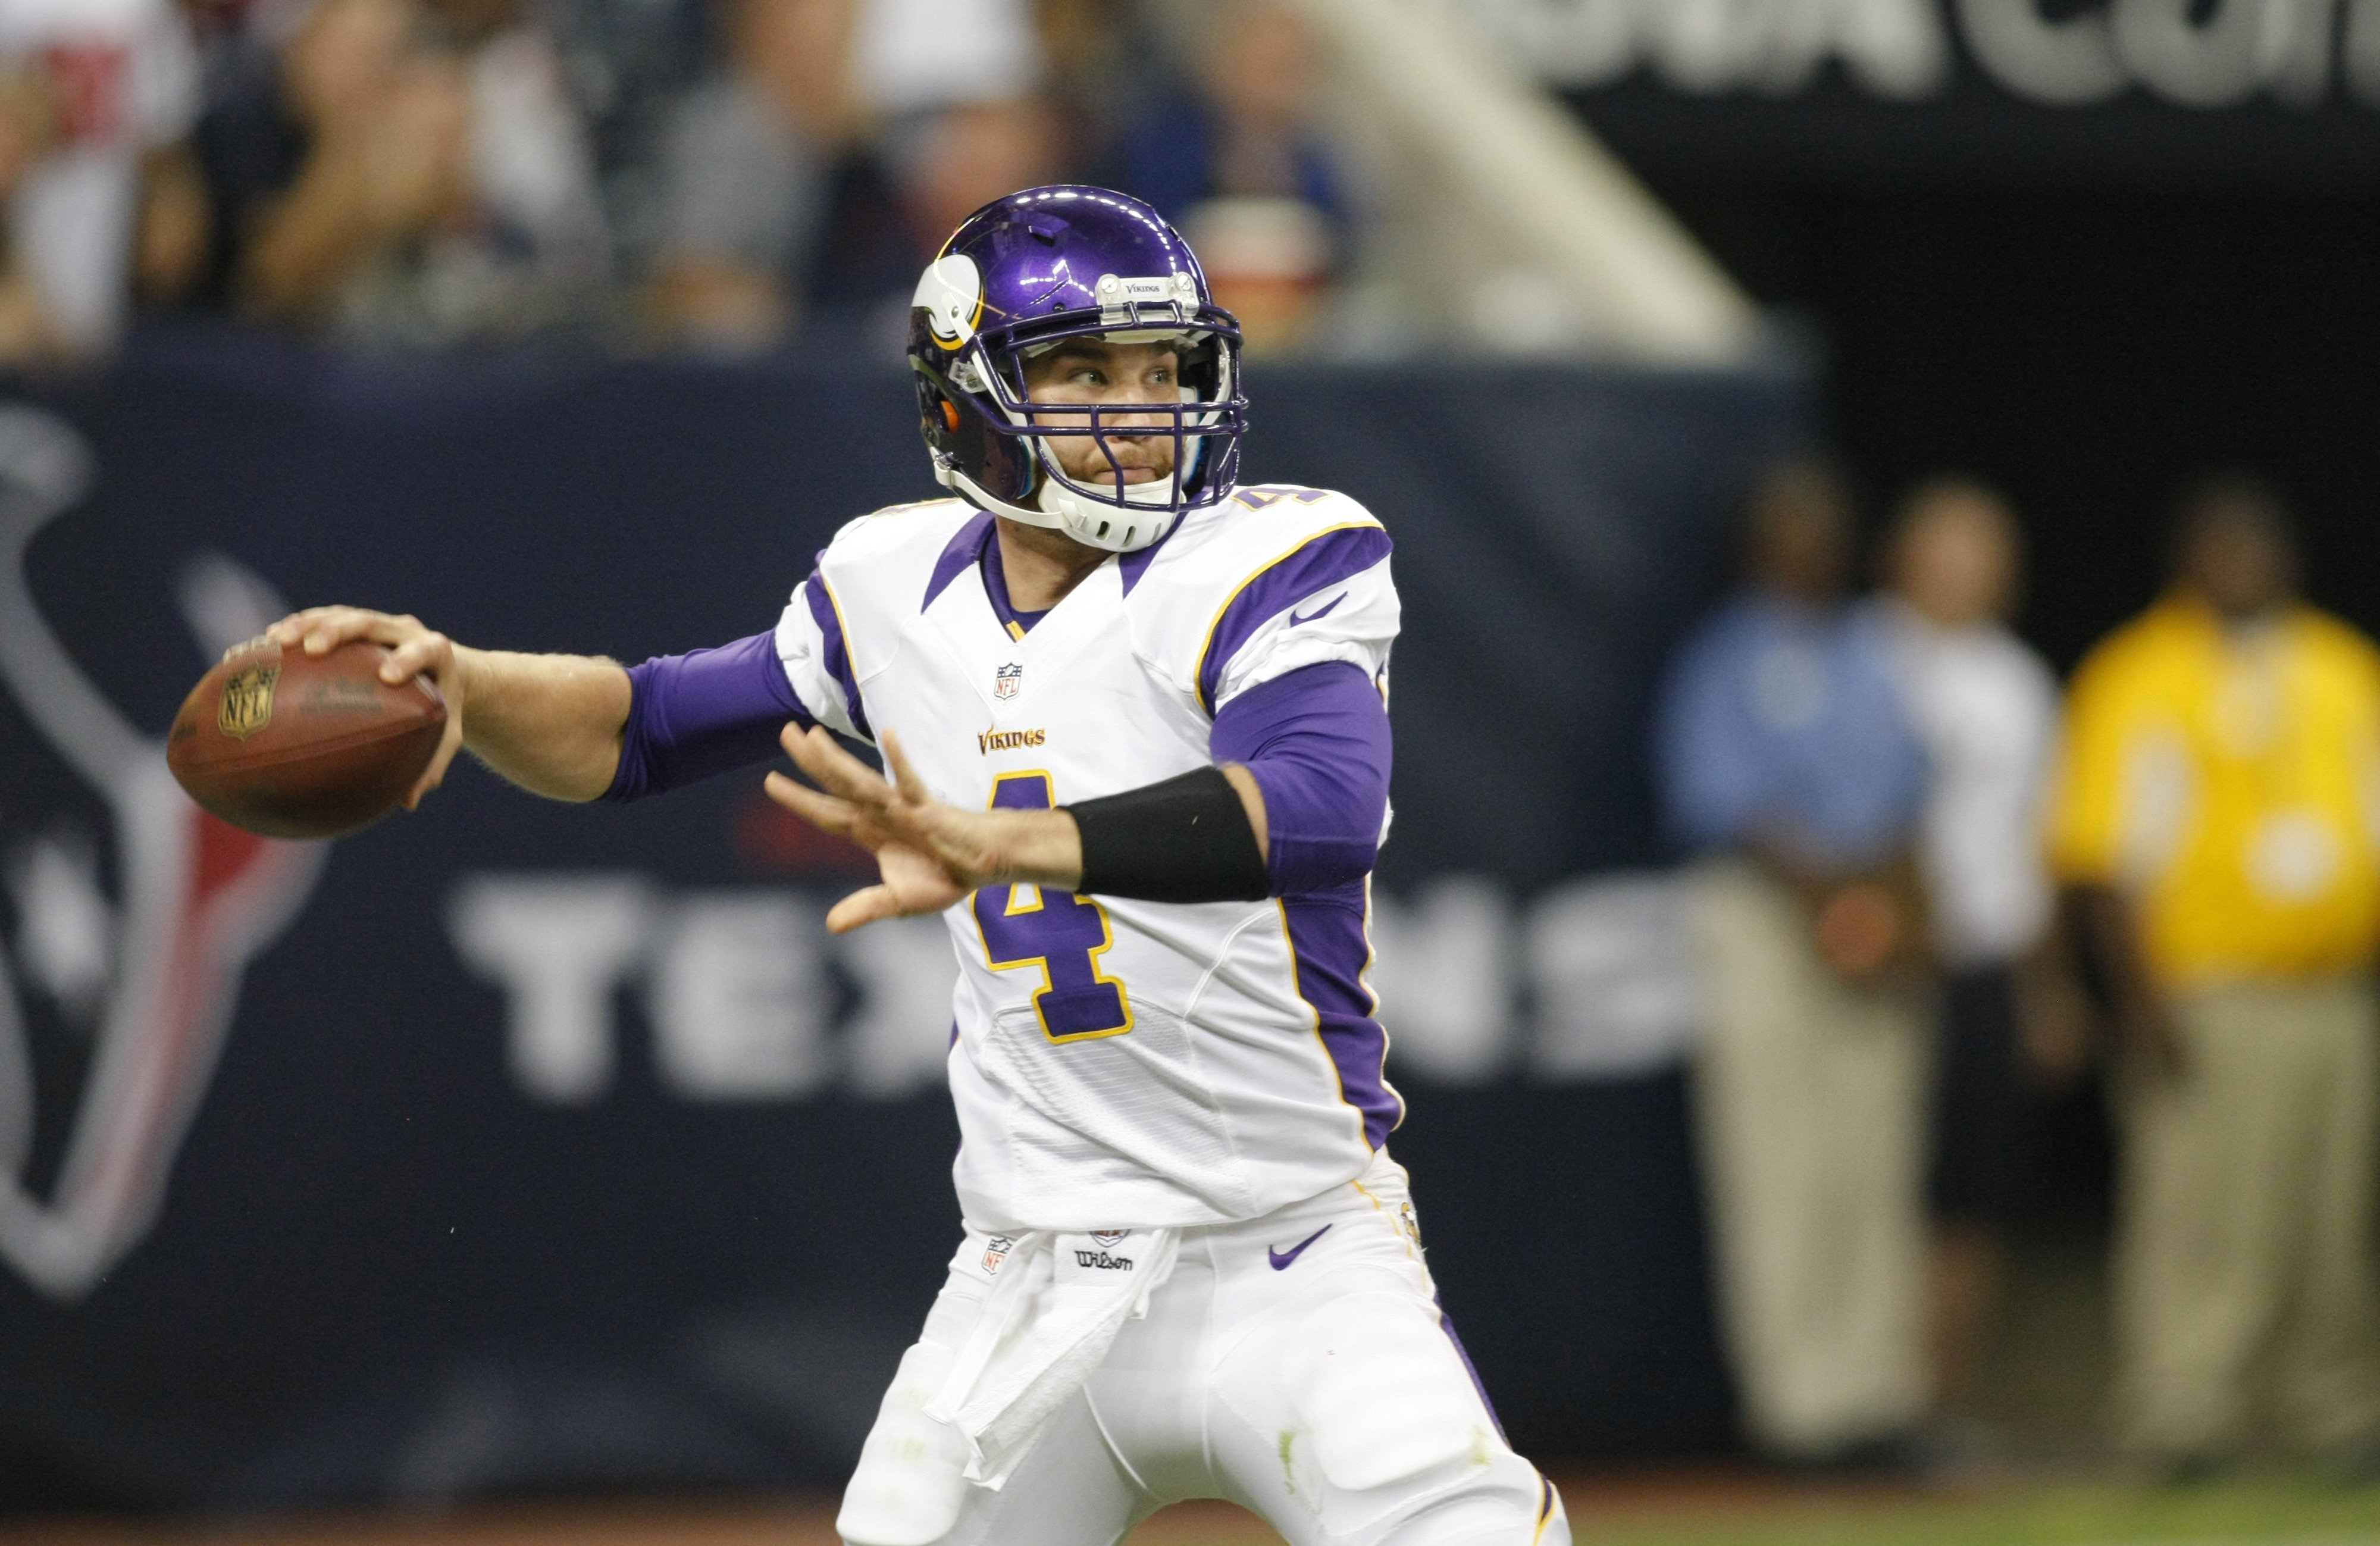 The Vikings thought enough of McLeod Bethel-Thompson to keep him on the 53-man roster, electing to cut veteran Sage Rosenfels instead. (Mandatory Credit: Brett Davis-US PRESSWIRE)